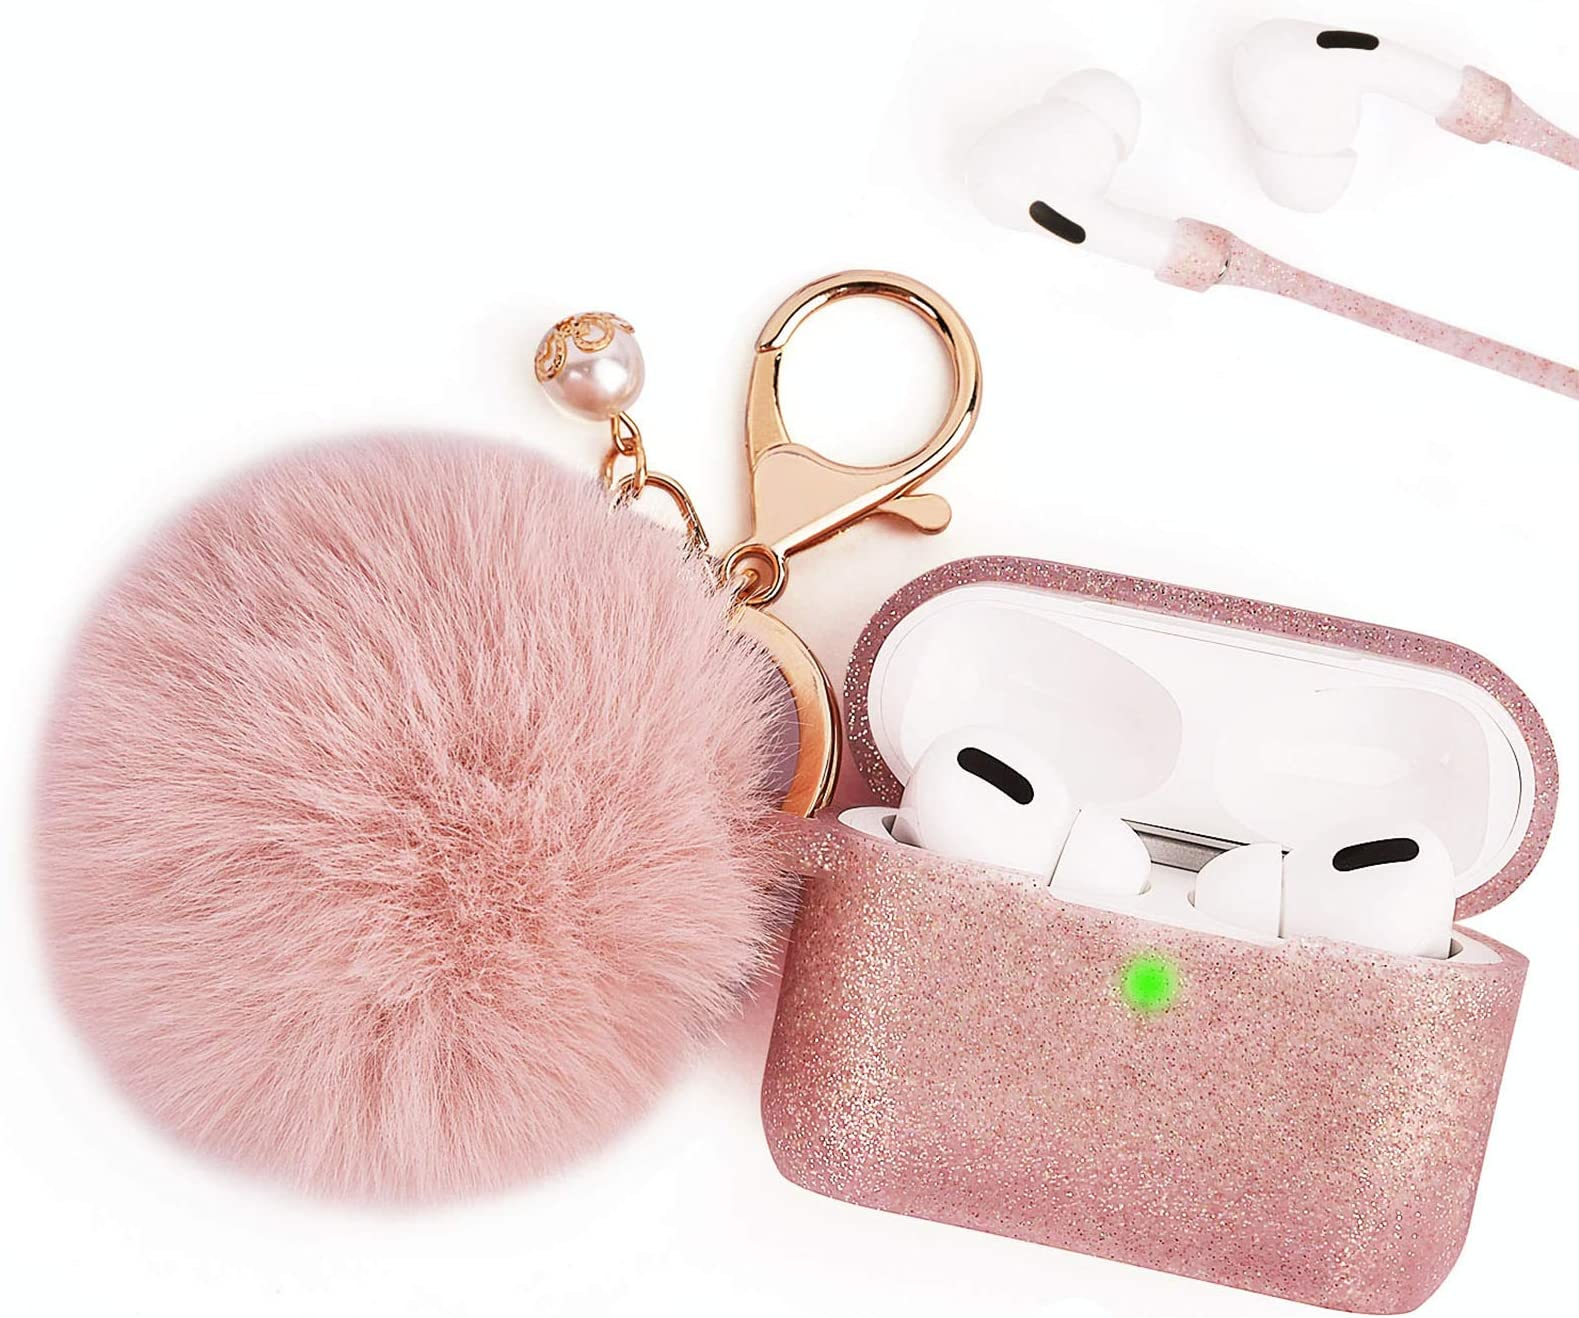 Amazon Com Case For Airpods Pro Bling Airpod Pro Protective Cover Case For Apple Airpods Pro Charging Case Filoto Cute Air Pods 3 Accessories Silicone Case Keychain Pompom Skin Strap Rose Gold Electronics